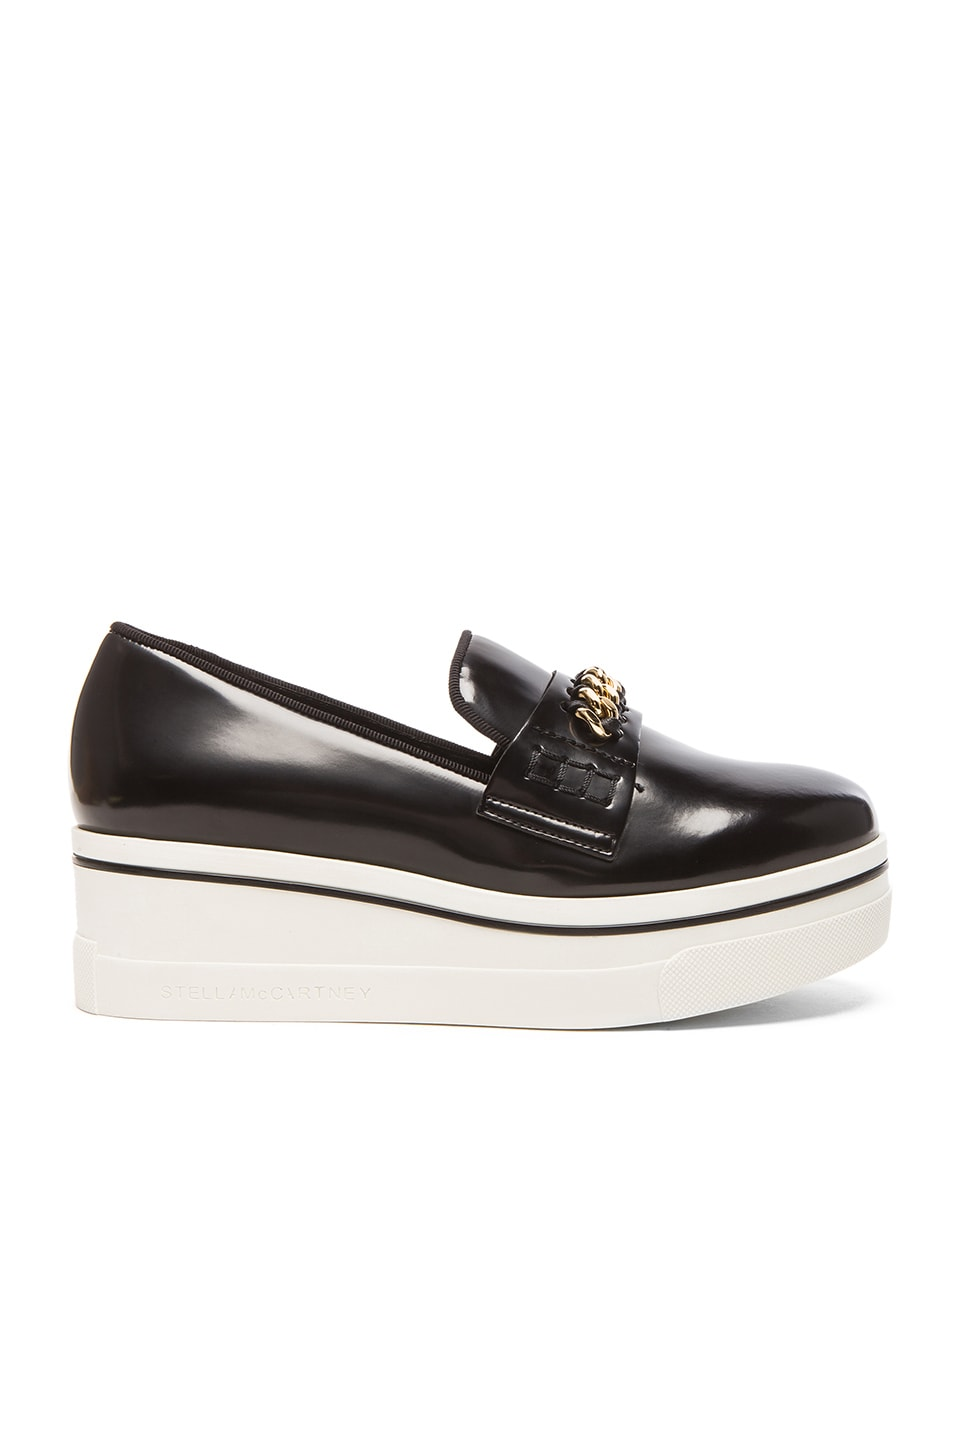 Stella McCartney Black Black Binx Loafers, Women's, Size 3